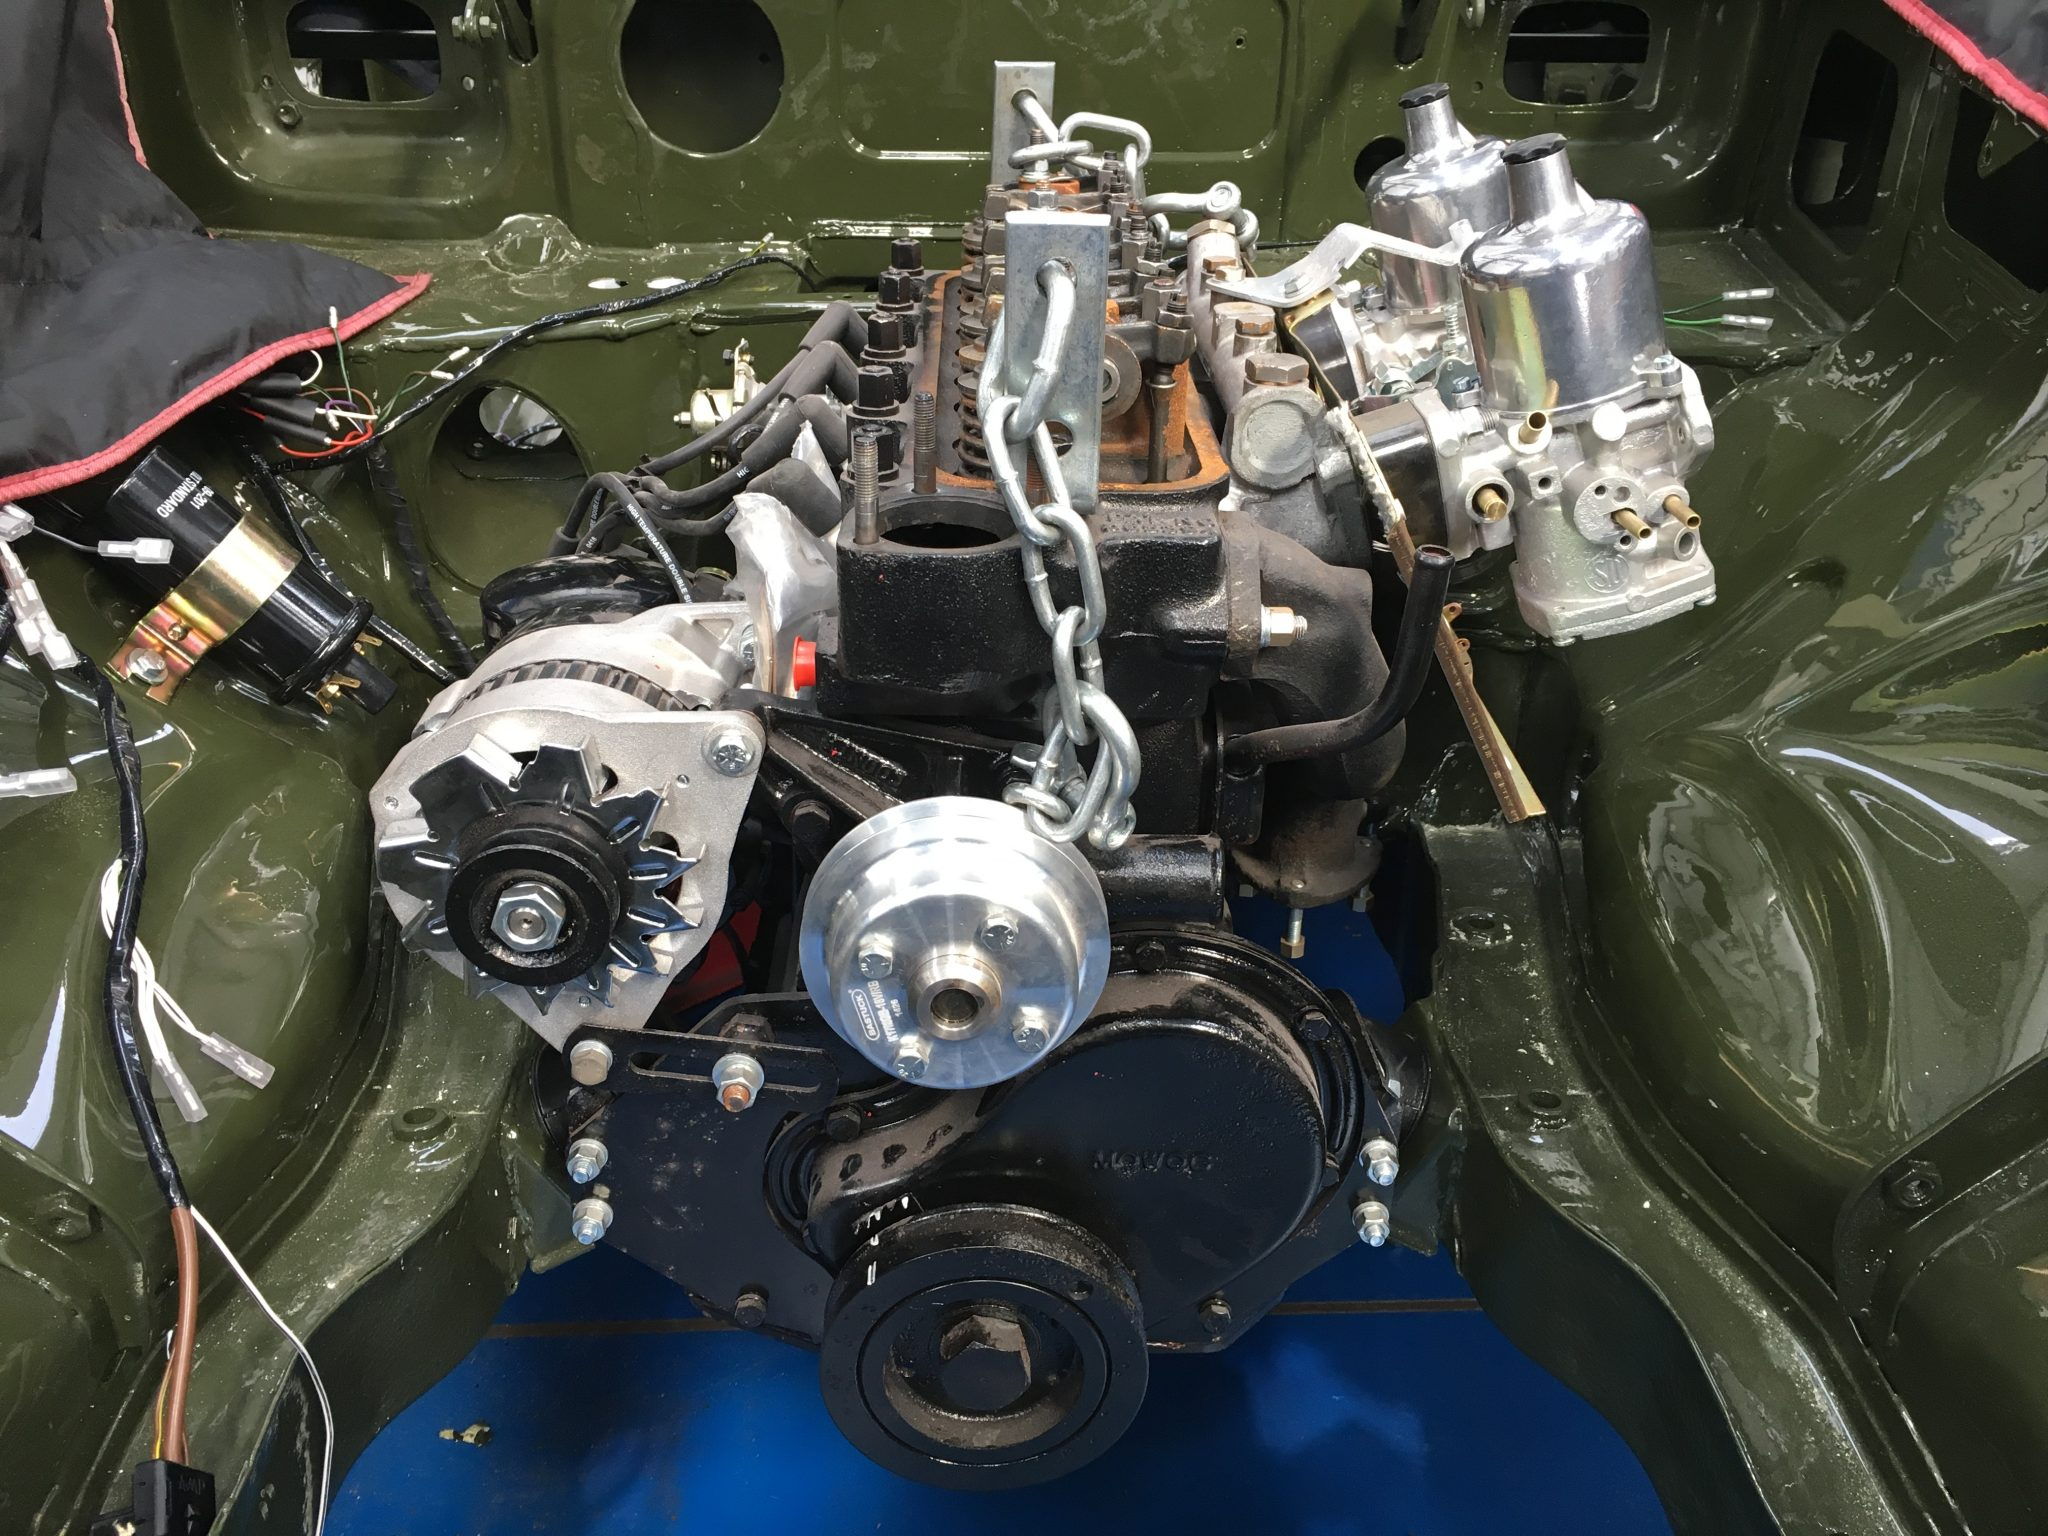 Re-instating the MGB engine